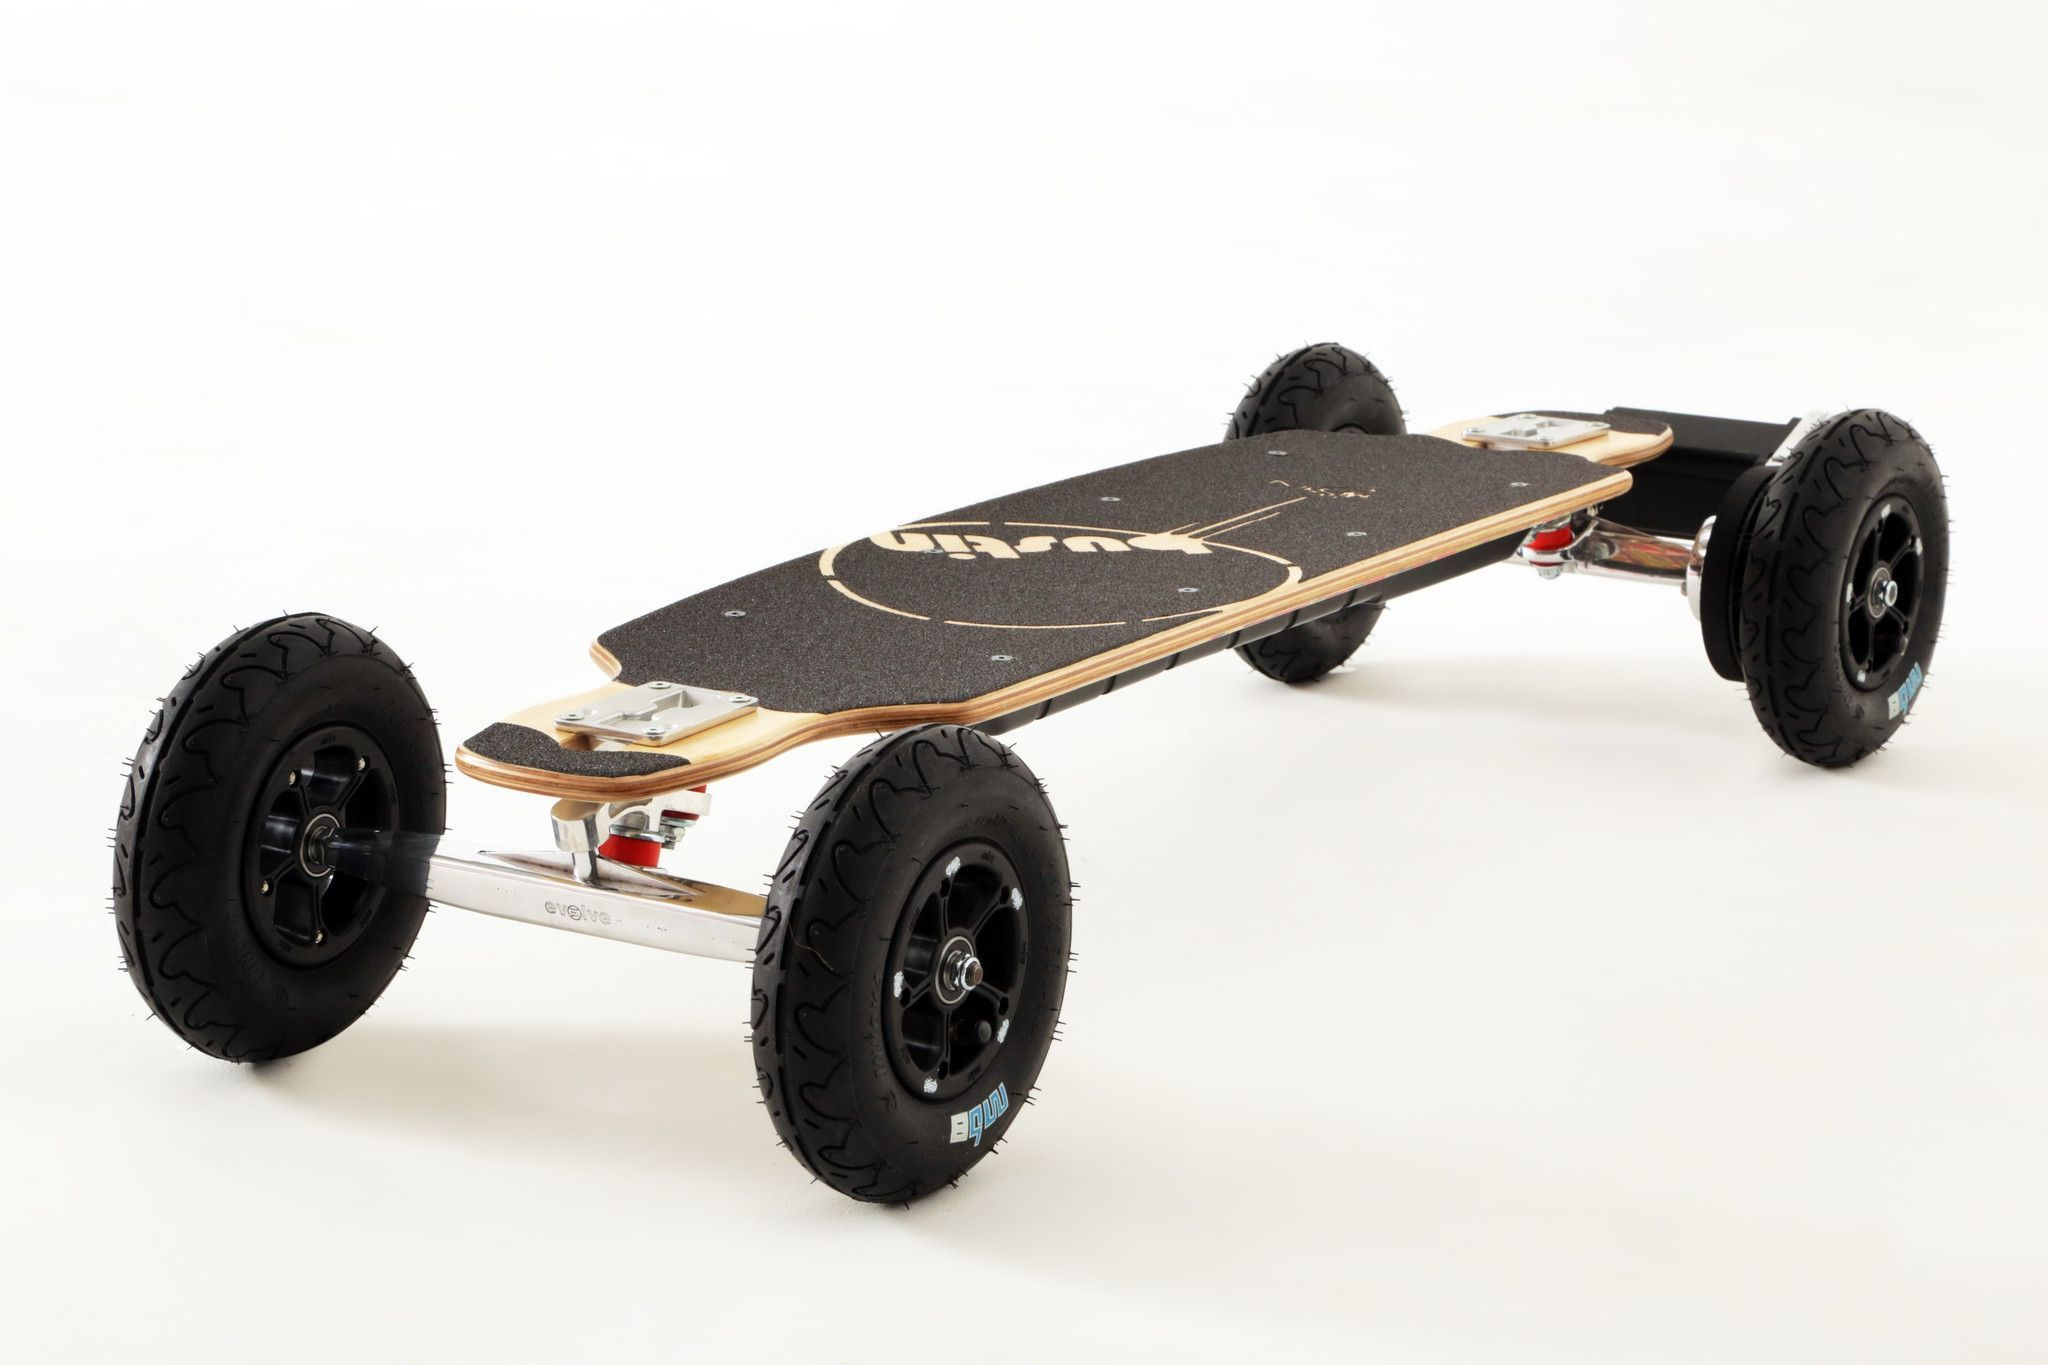 Bustin Series Limited Edition At Electric Skateboard Discontinued